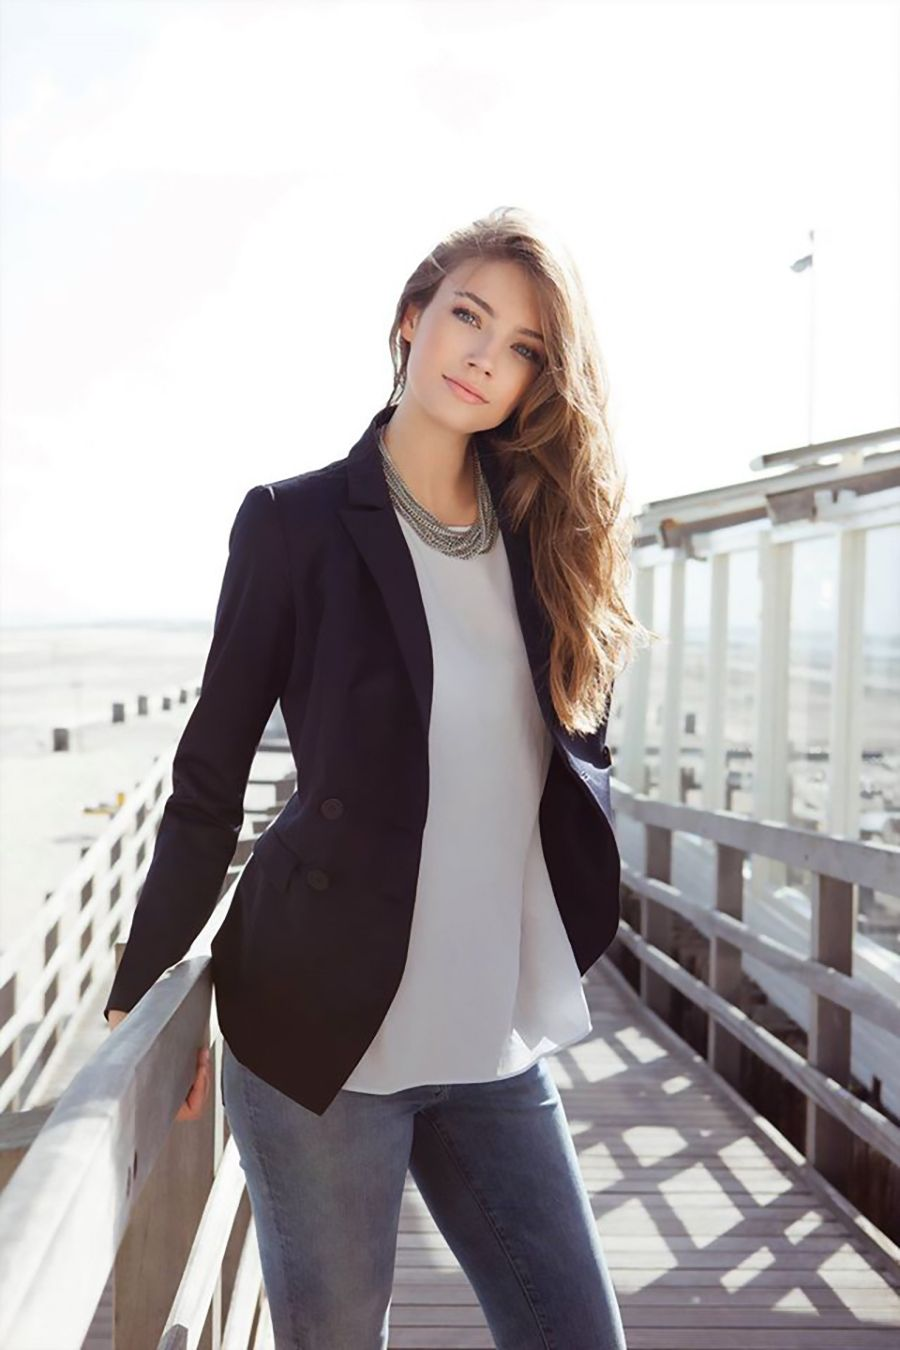 lorena asian singles Philippin girls, asian dating site enables you to meet beautiful asian singles who are sincere in seeking date  asian women picture,lorena from / cebu.